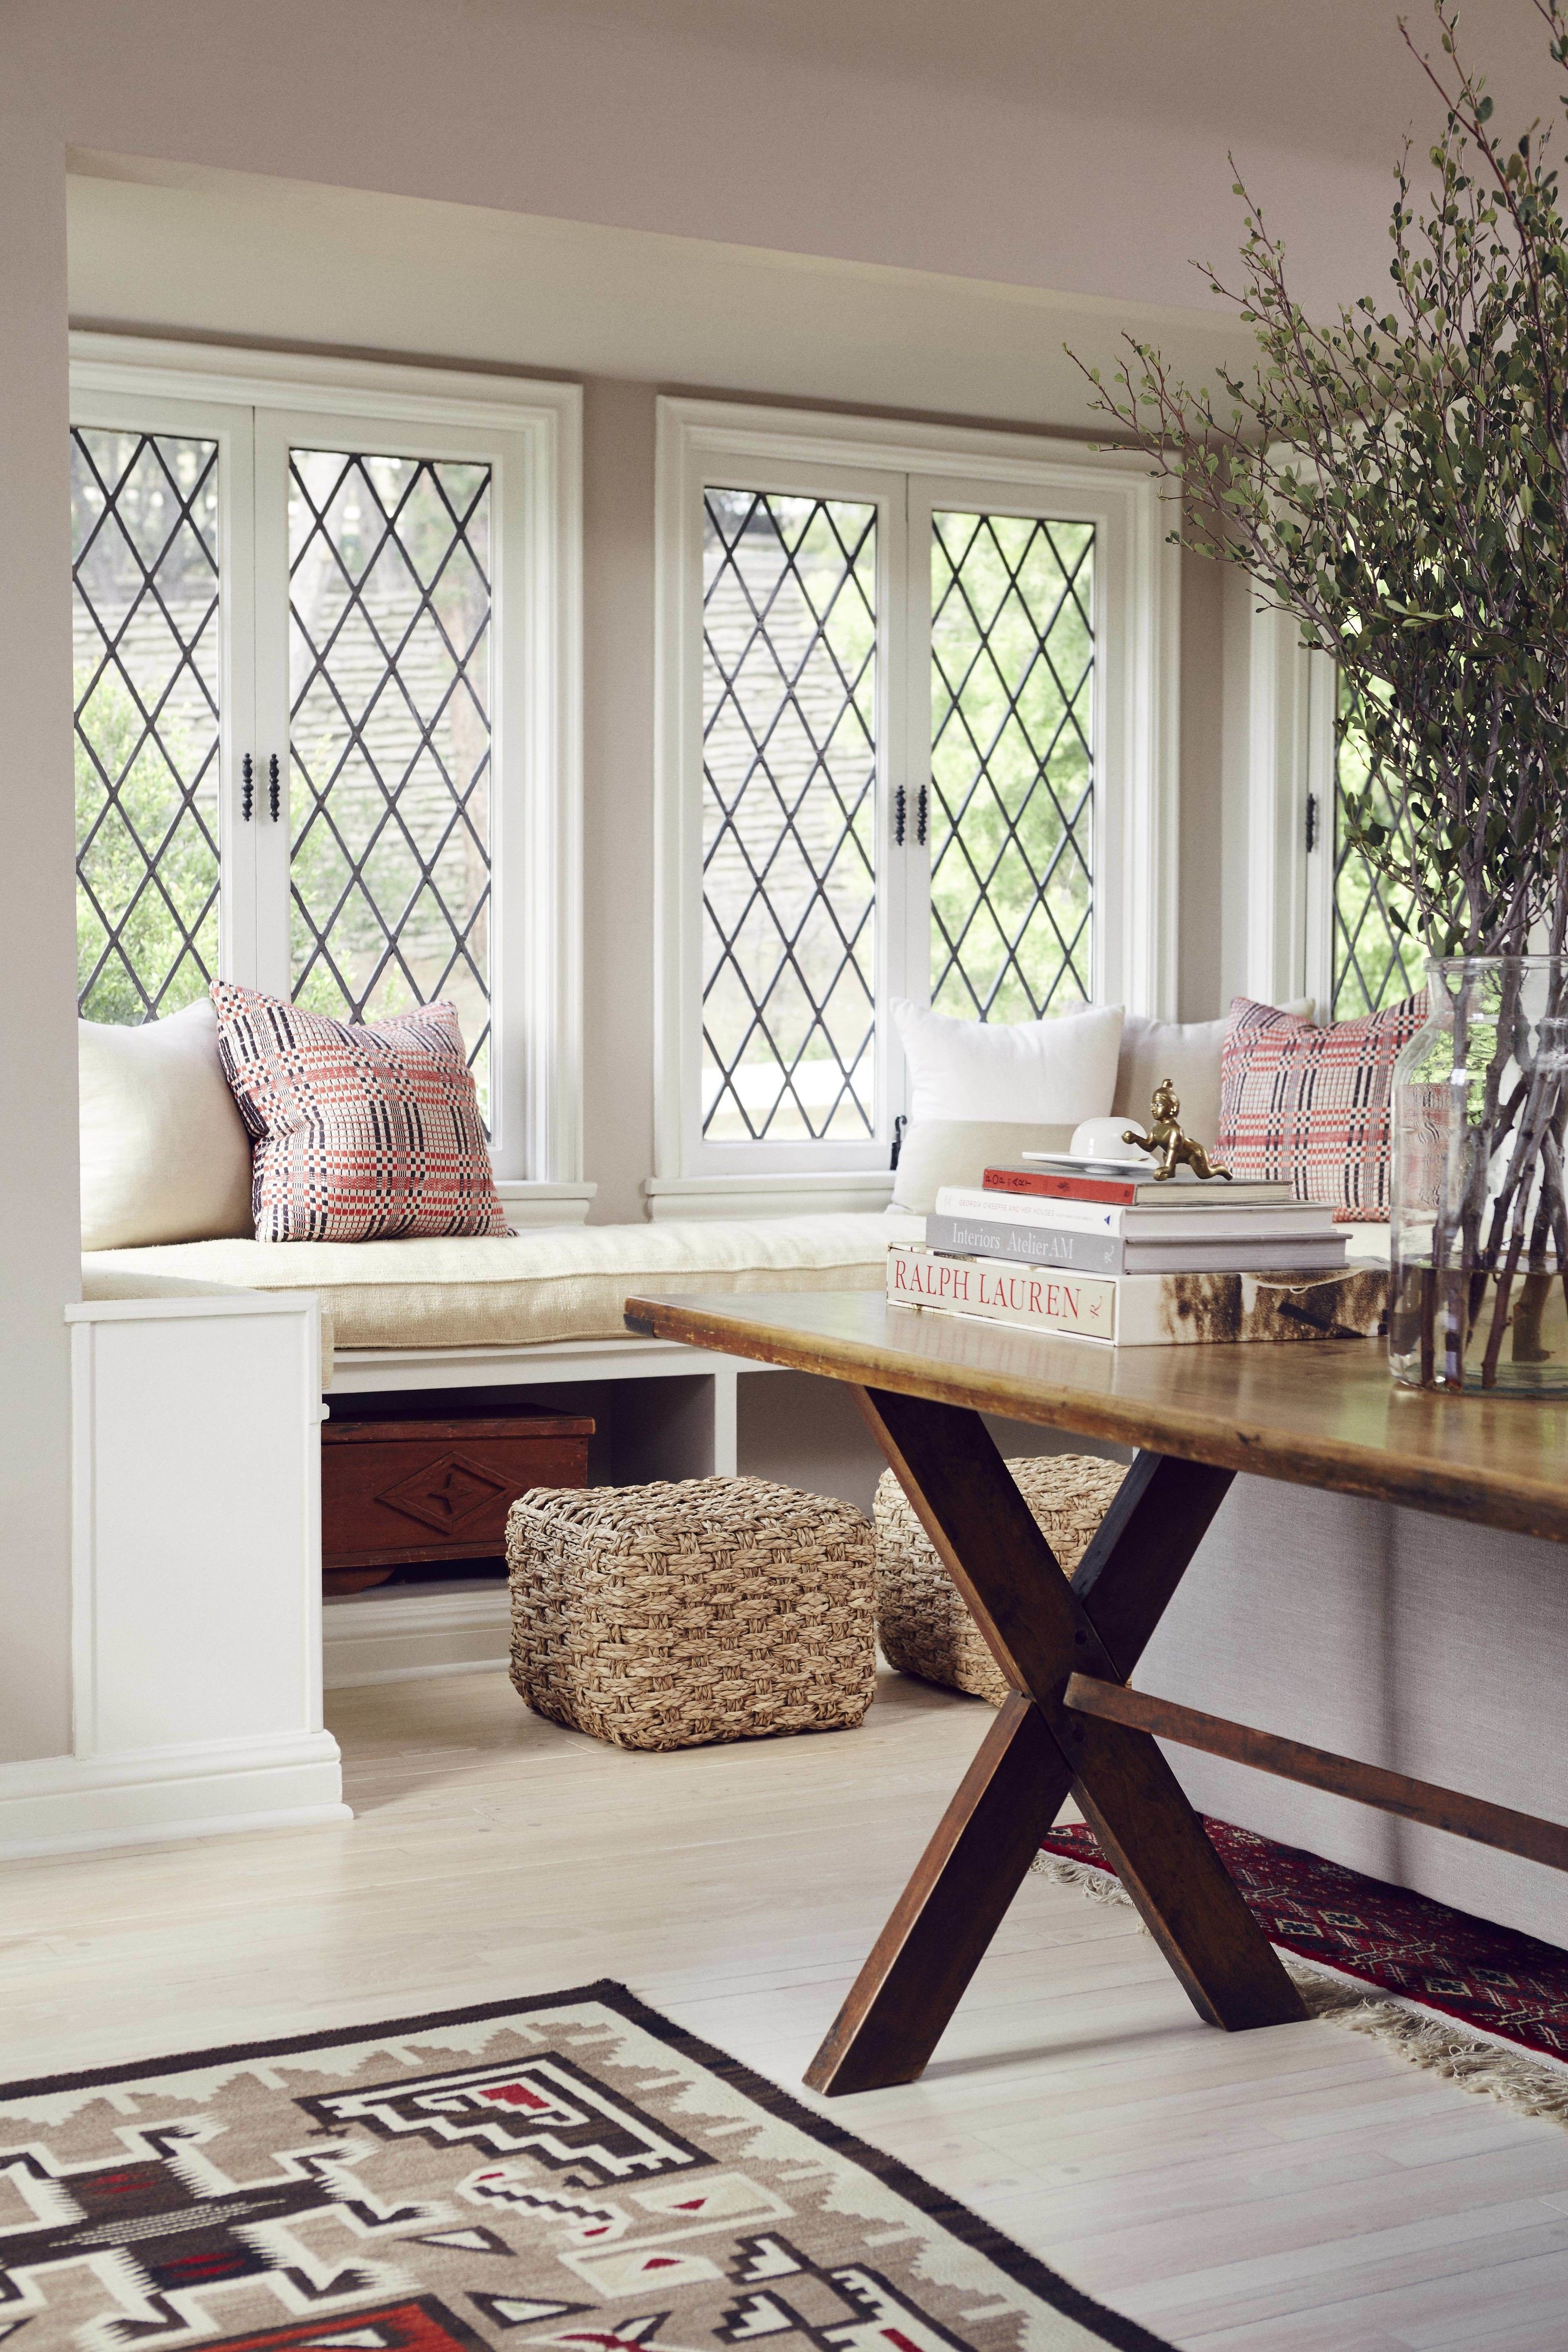 3 Home Decor Trends For Spring Brittany Stager: A Chicly Renovated Spanish Revival In Los Angeles